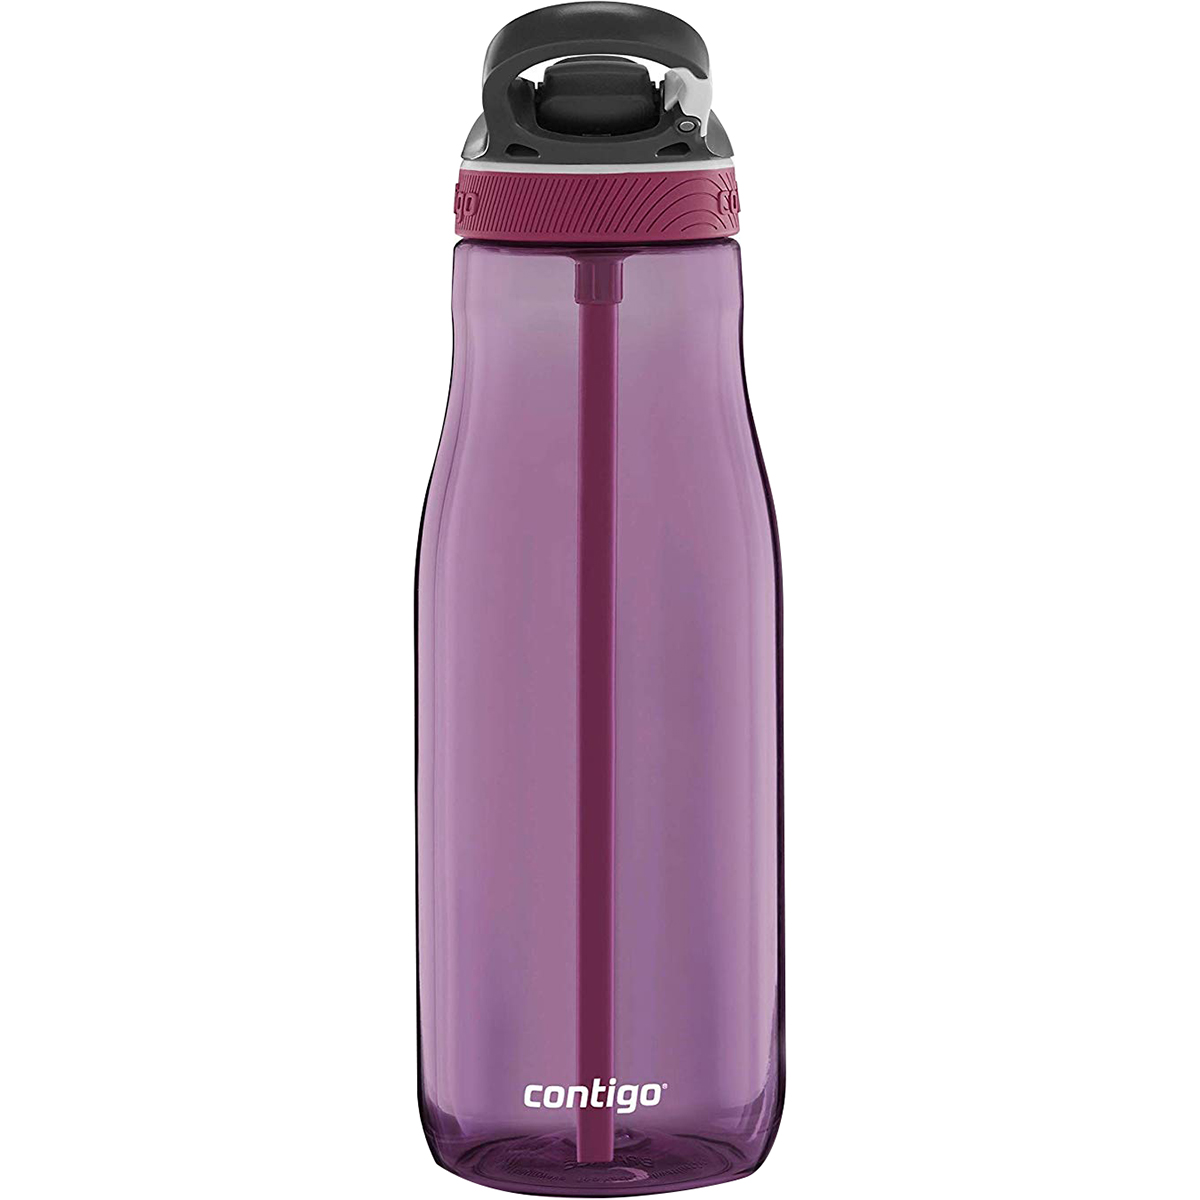 Contigo-40-oz-Ashland-Autospout-Water-Bottle thumbnail 14